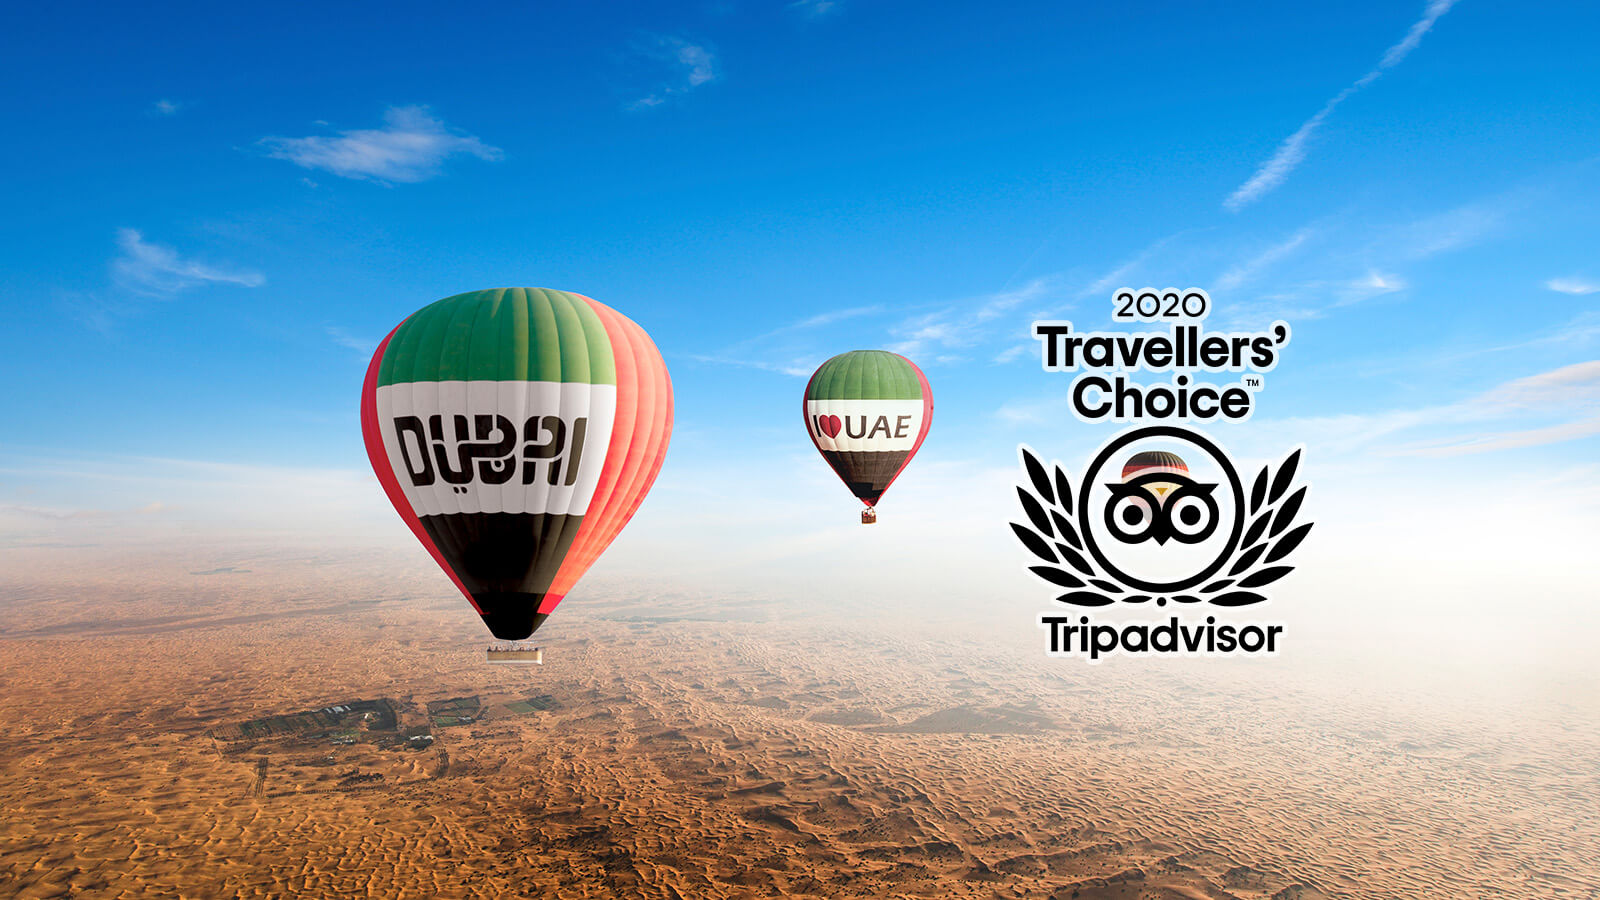 Balloon Adventures Dubai win 2020 Tripadvisor Travellers' Choice Award